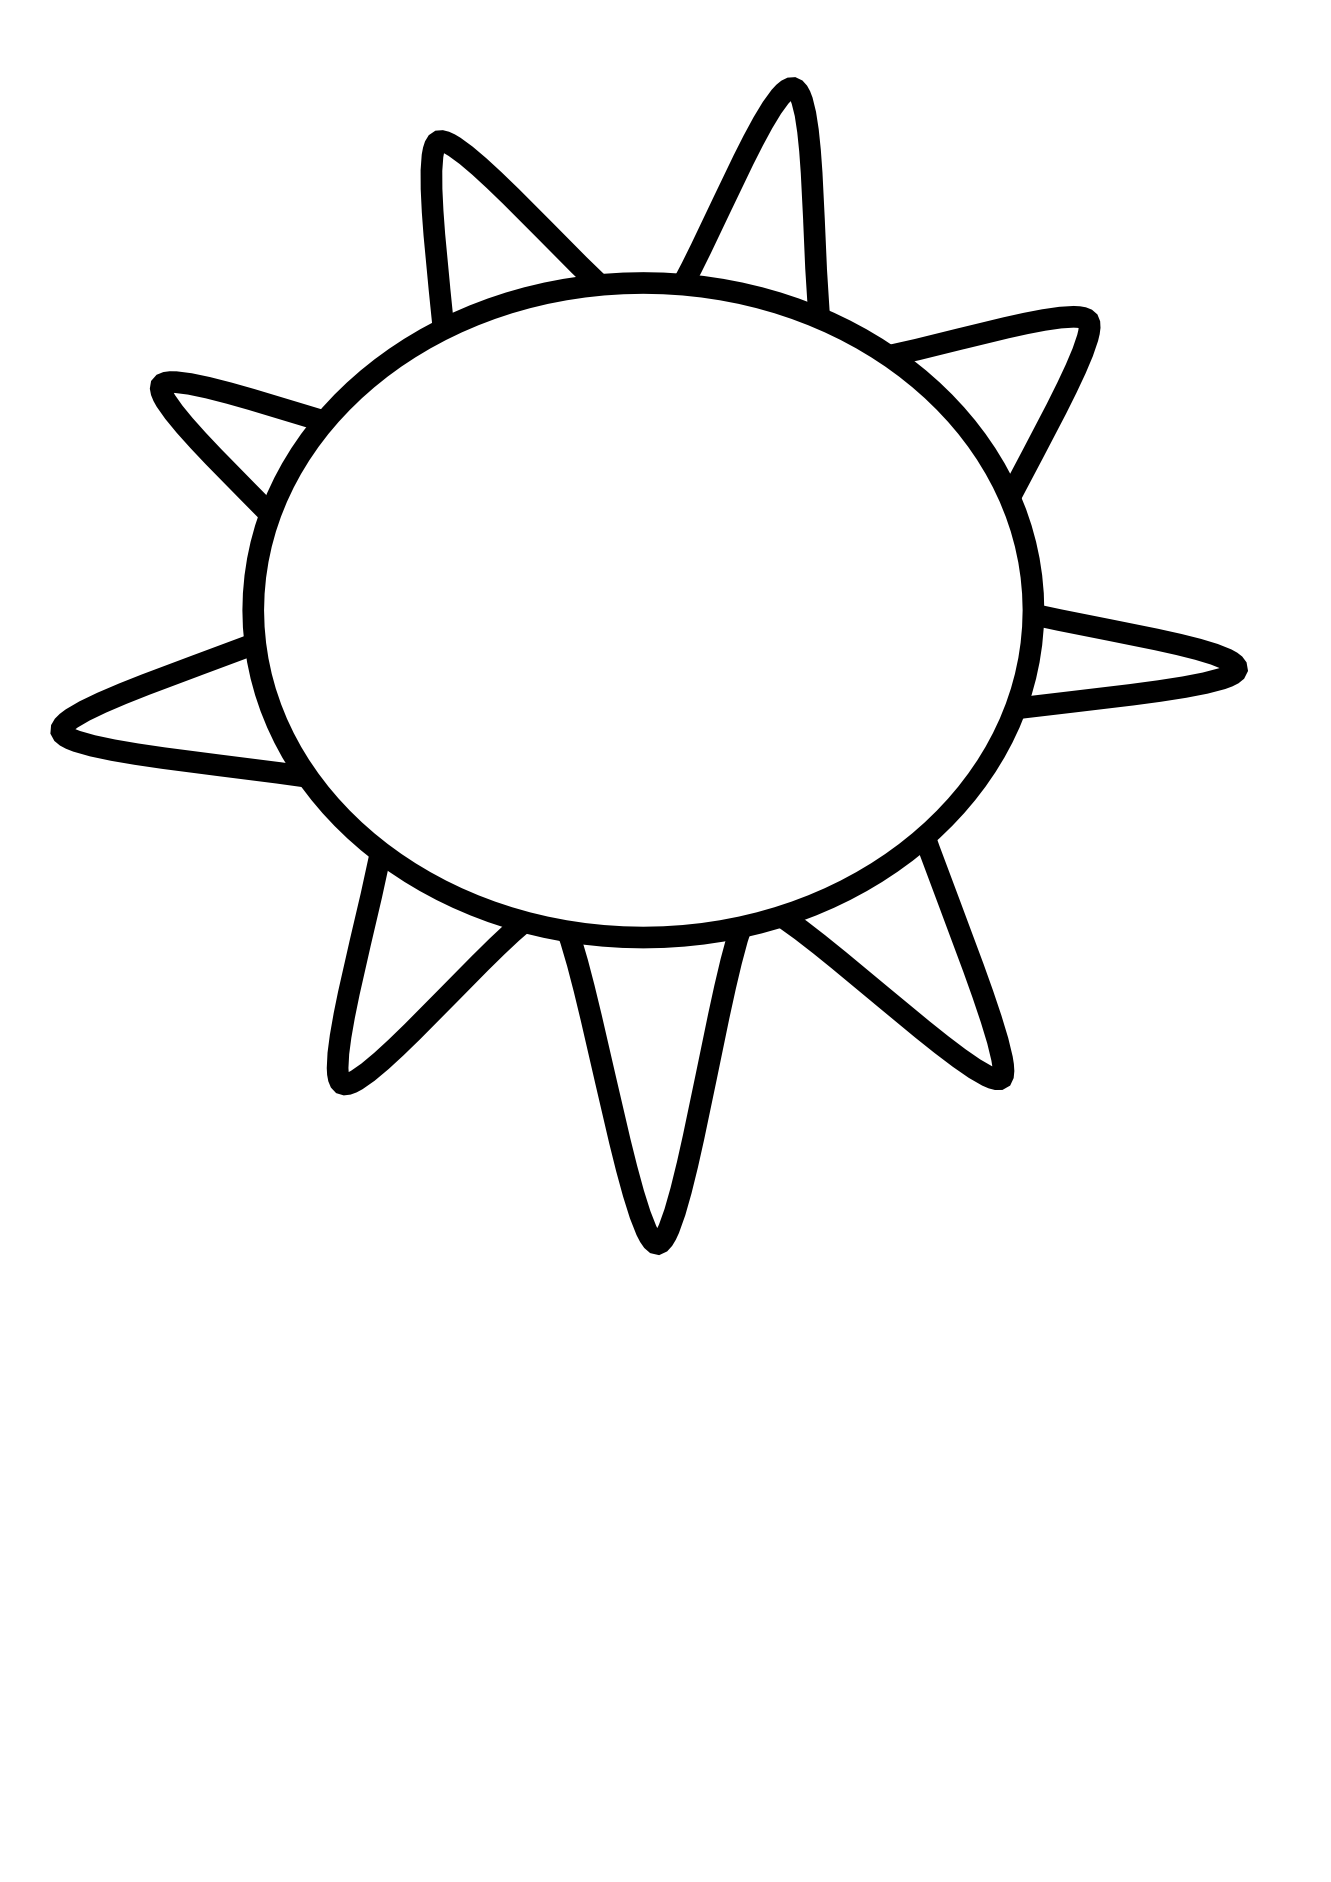 Sun outline clipart svg freeuse Sun Clipart Black And White | Clipart Panda - Free Clipart Images svg freeuse